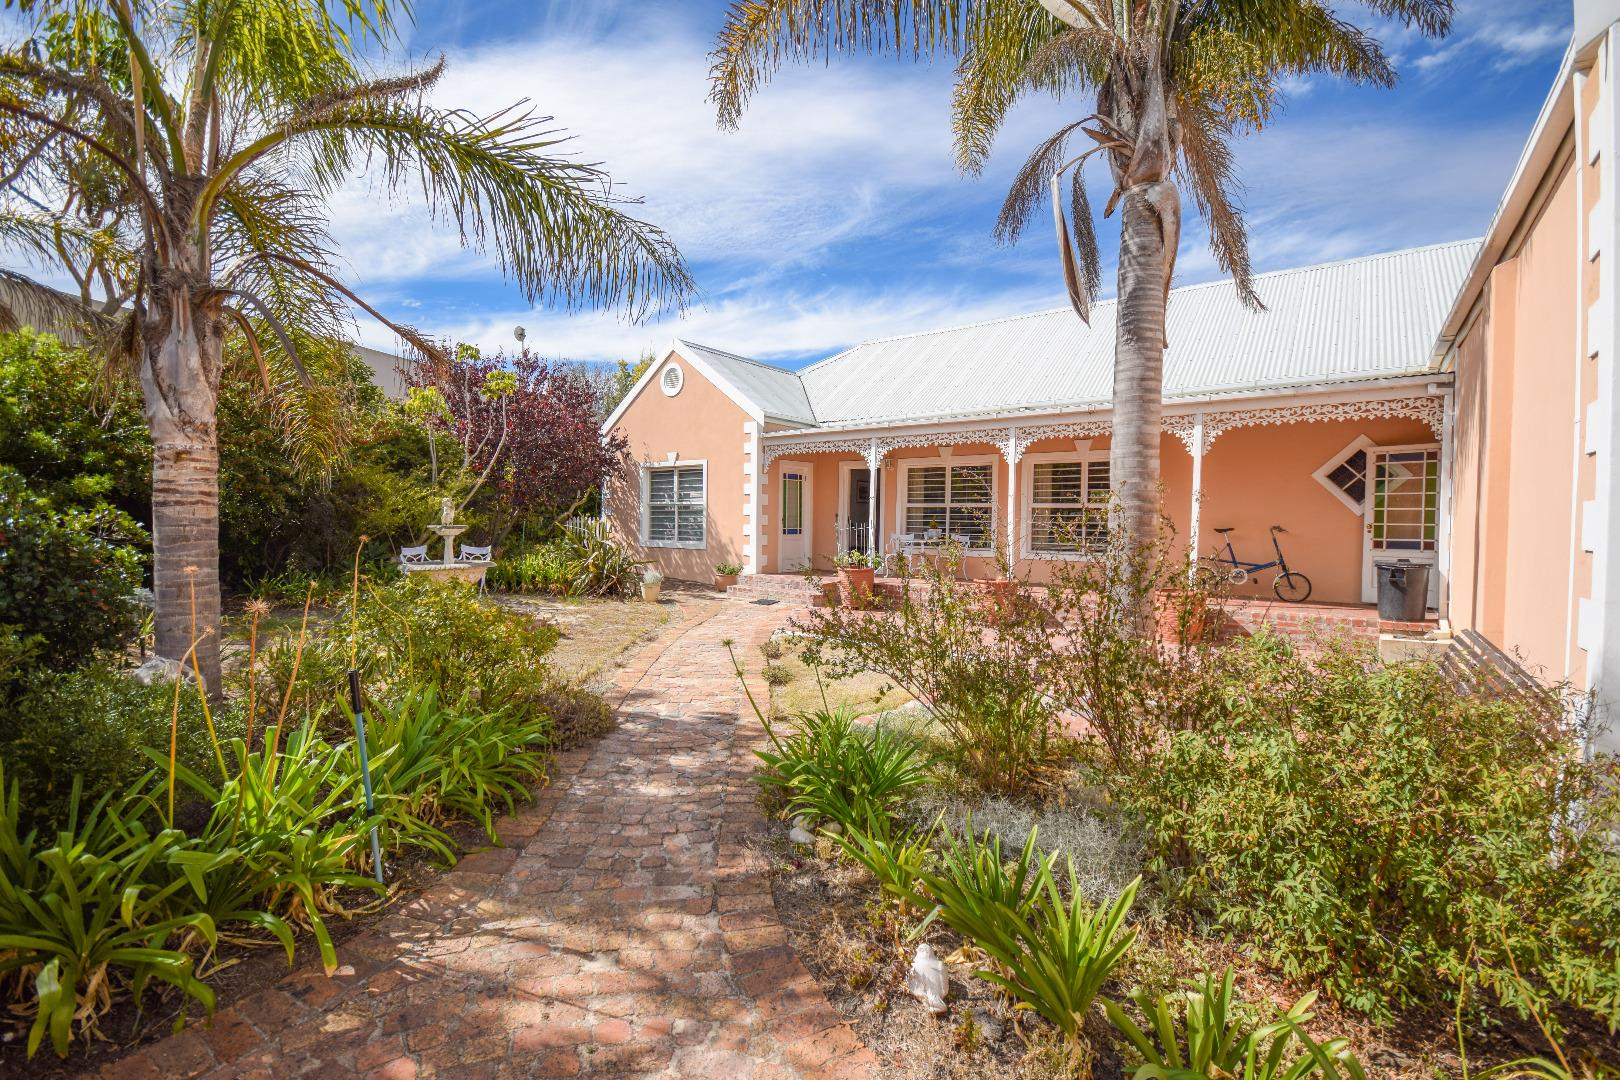 5 Bedroom  House for Sale in Bellville - Western Cape